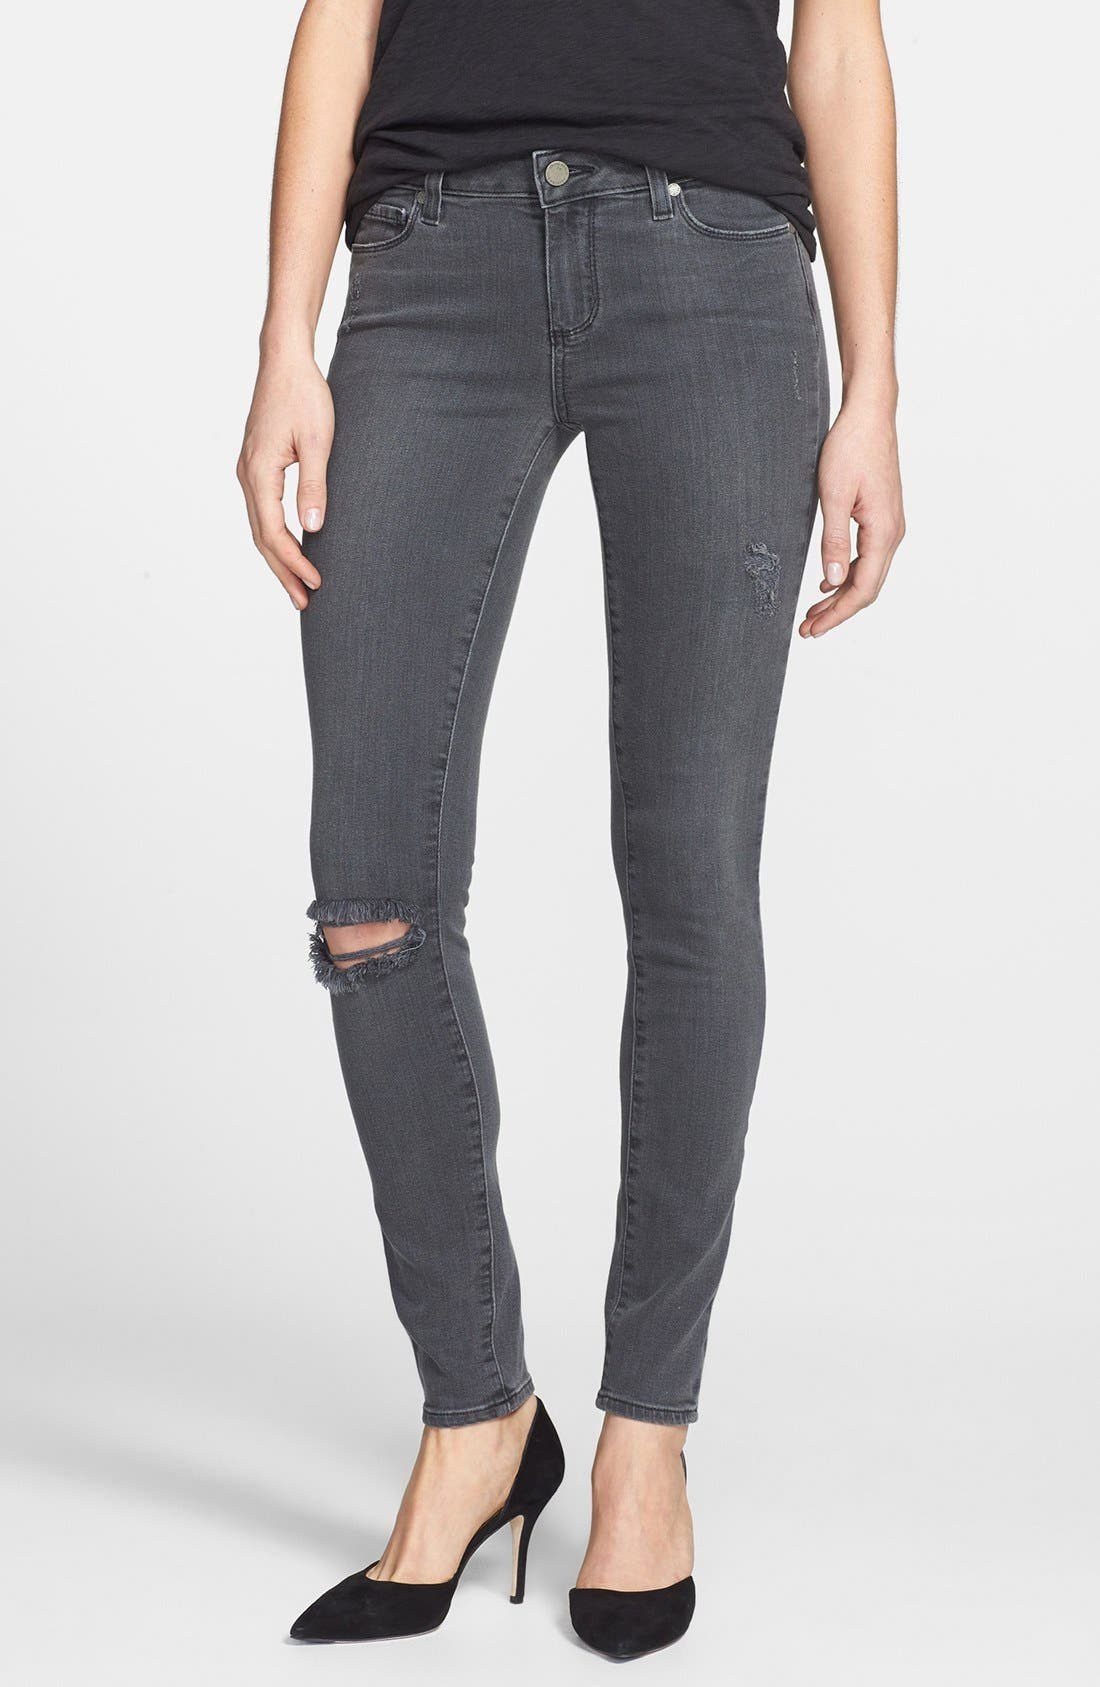 Alternate Image 1 Selected - Paige Denim 'Verdugo' Distressed Ultra Skinny Jeans (Kate Destructive)